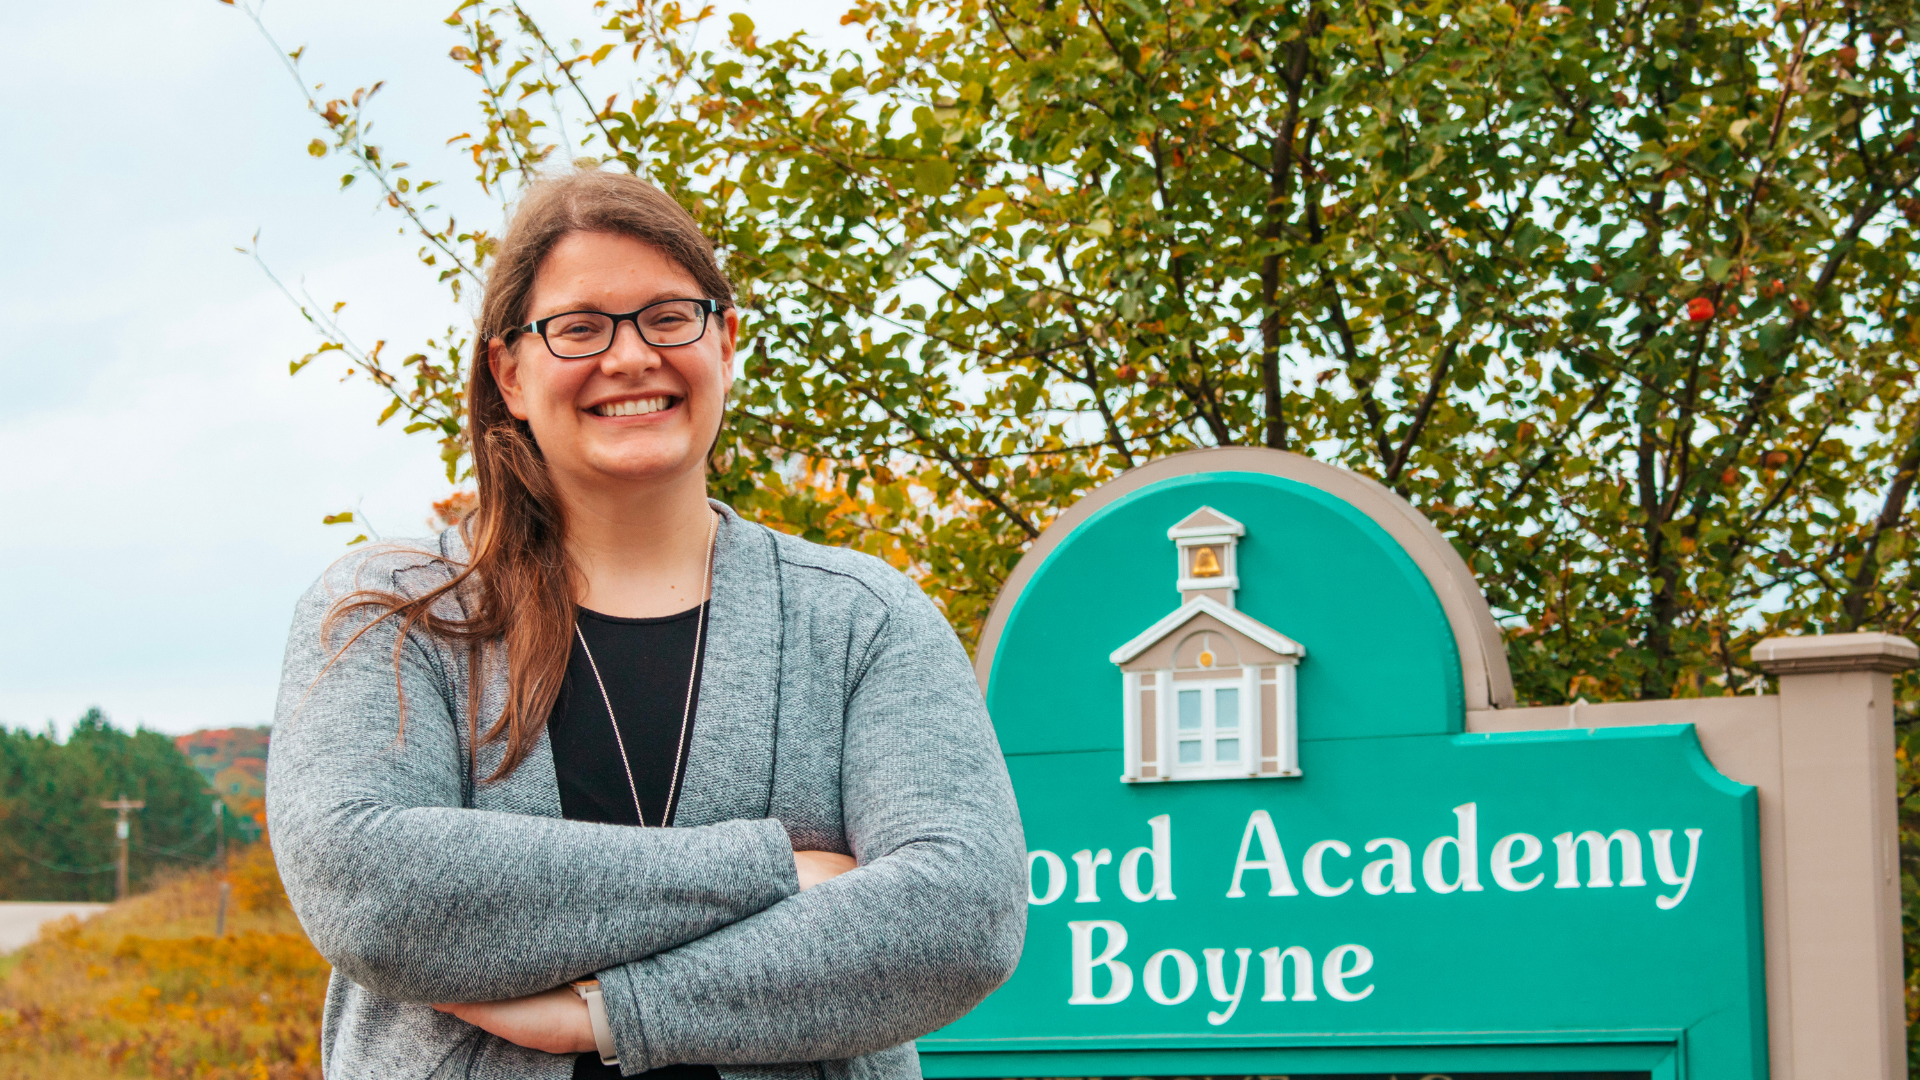 A photo of Concord Academy Boyne teacher, Caitlin Ritter, posing in front of her school sign amongst a backdrop of trees in full fall color.